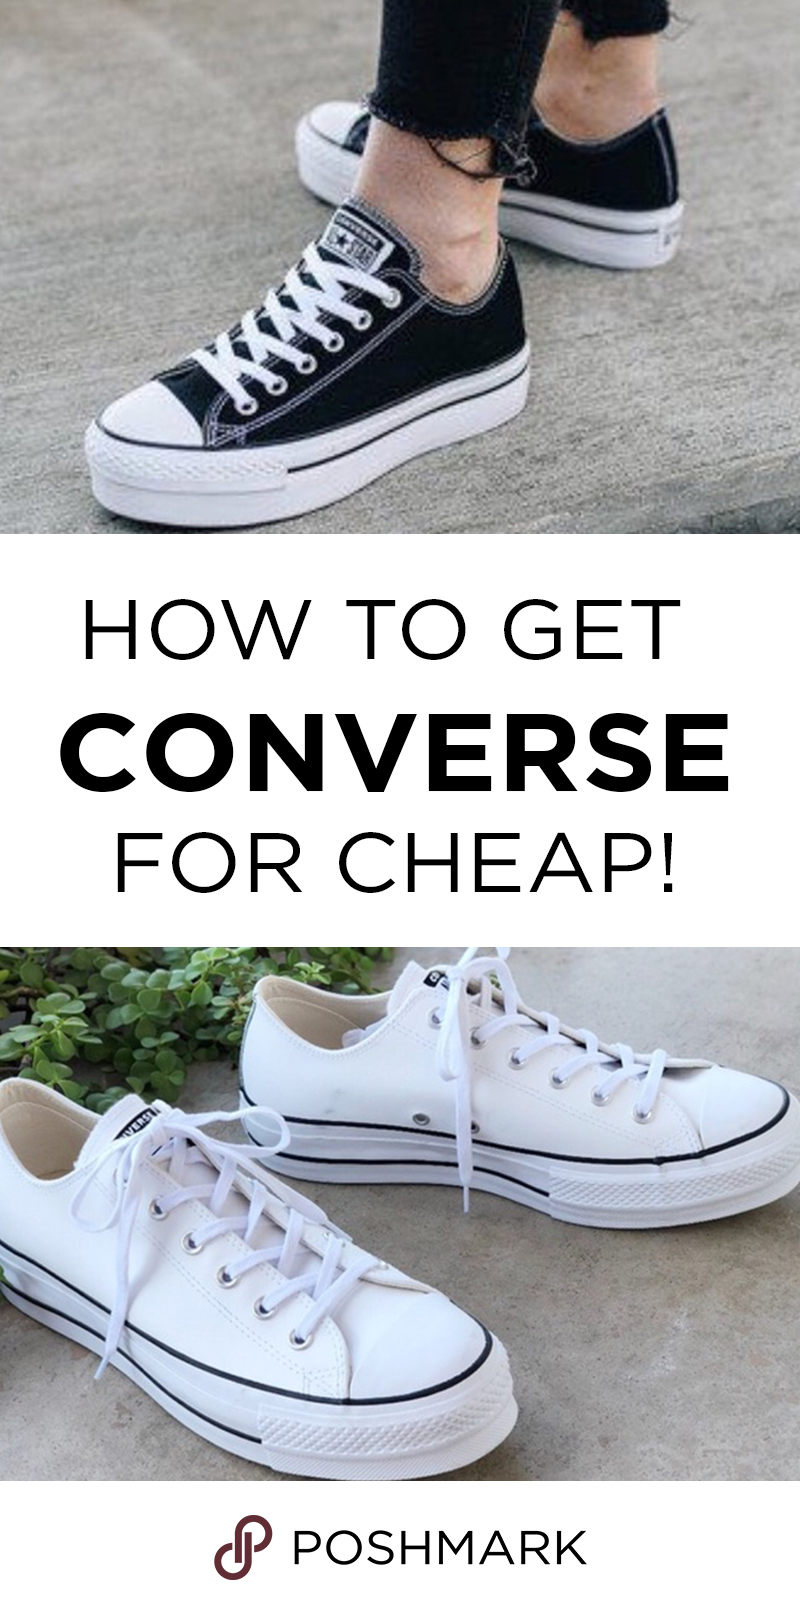 38c17cd80bf6 Find Converse sneakers up to 70% off when you shop on Poshmark. Download  the app today to shop and save!